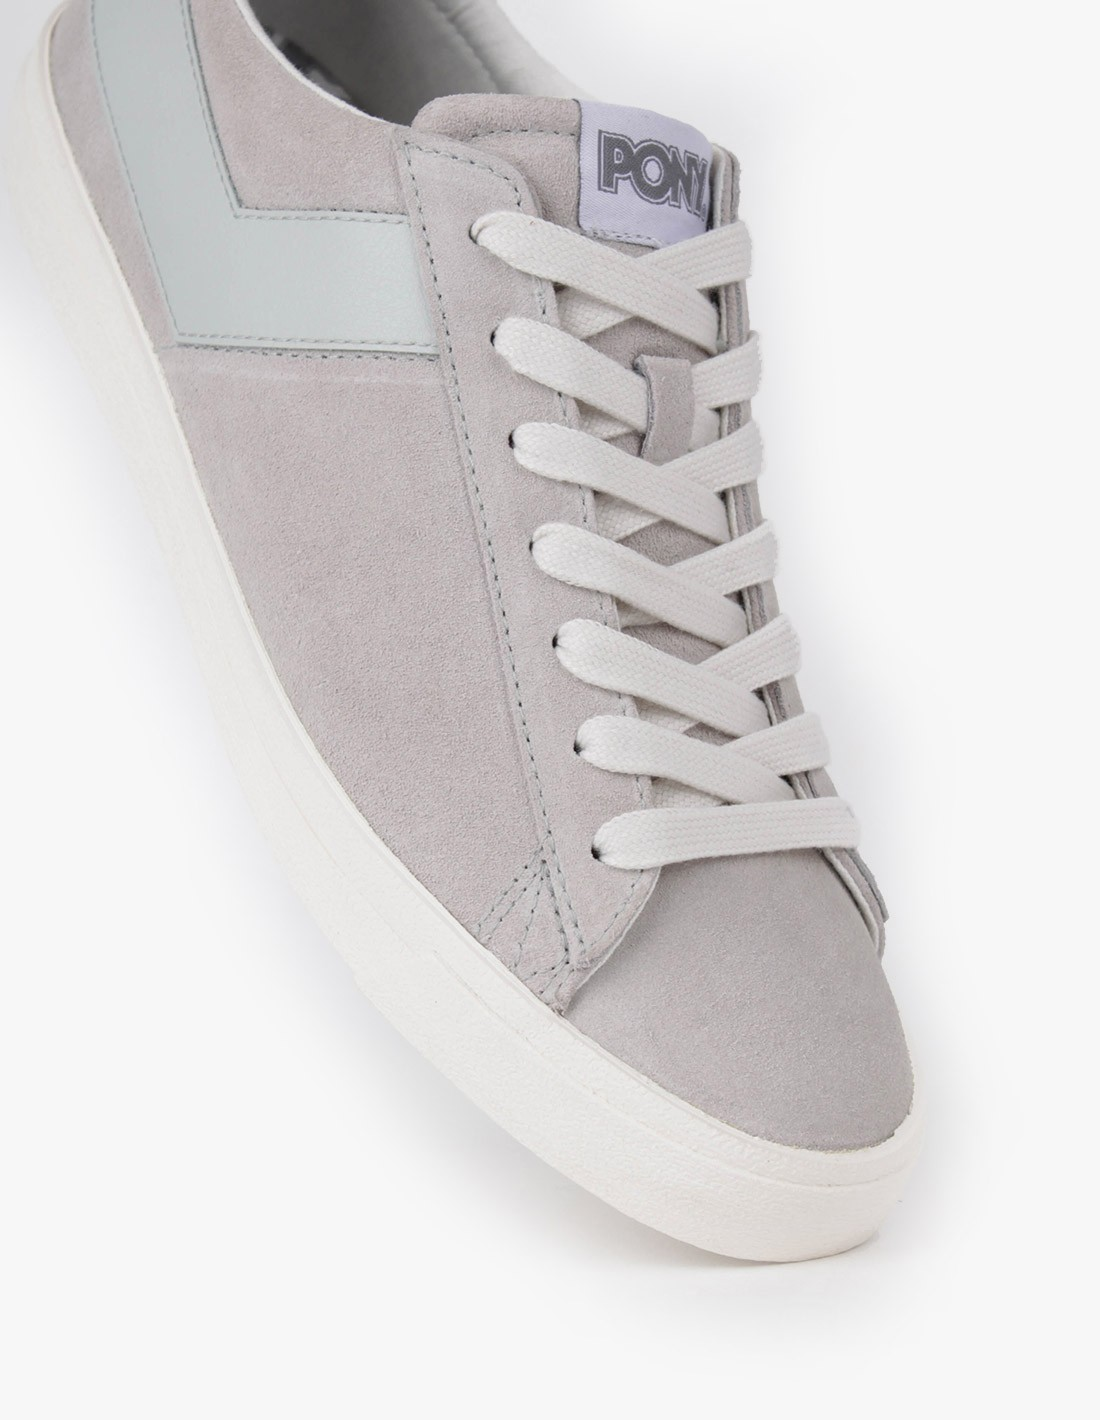 PONY Topstar Suede Ox in Light Grey